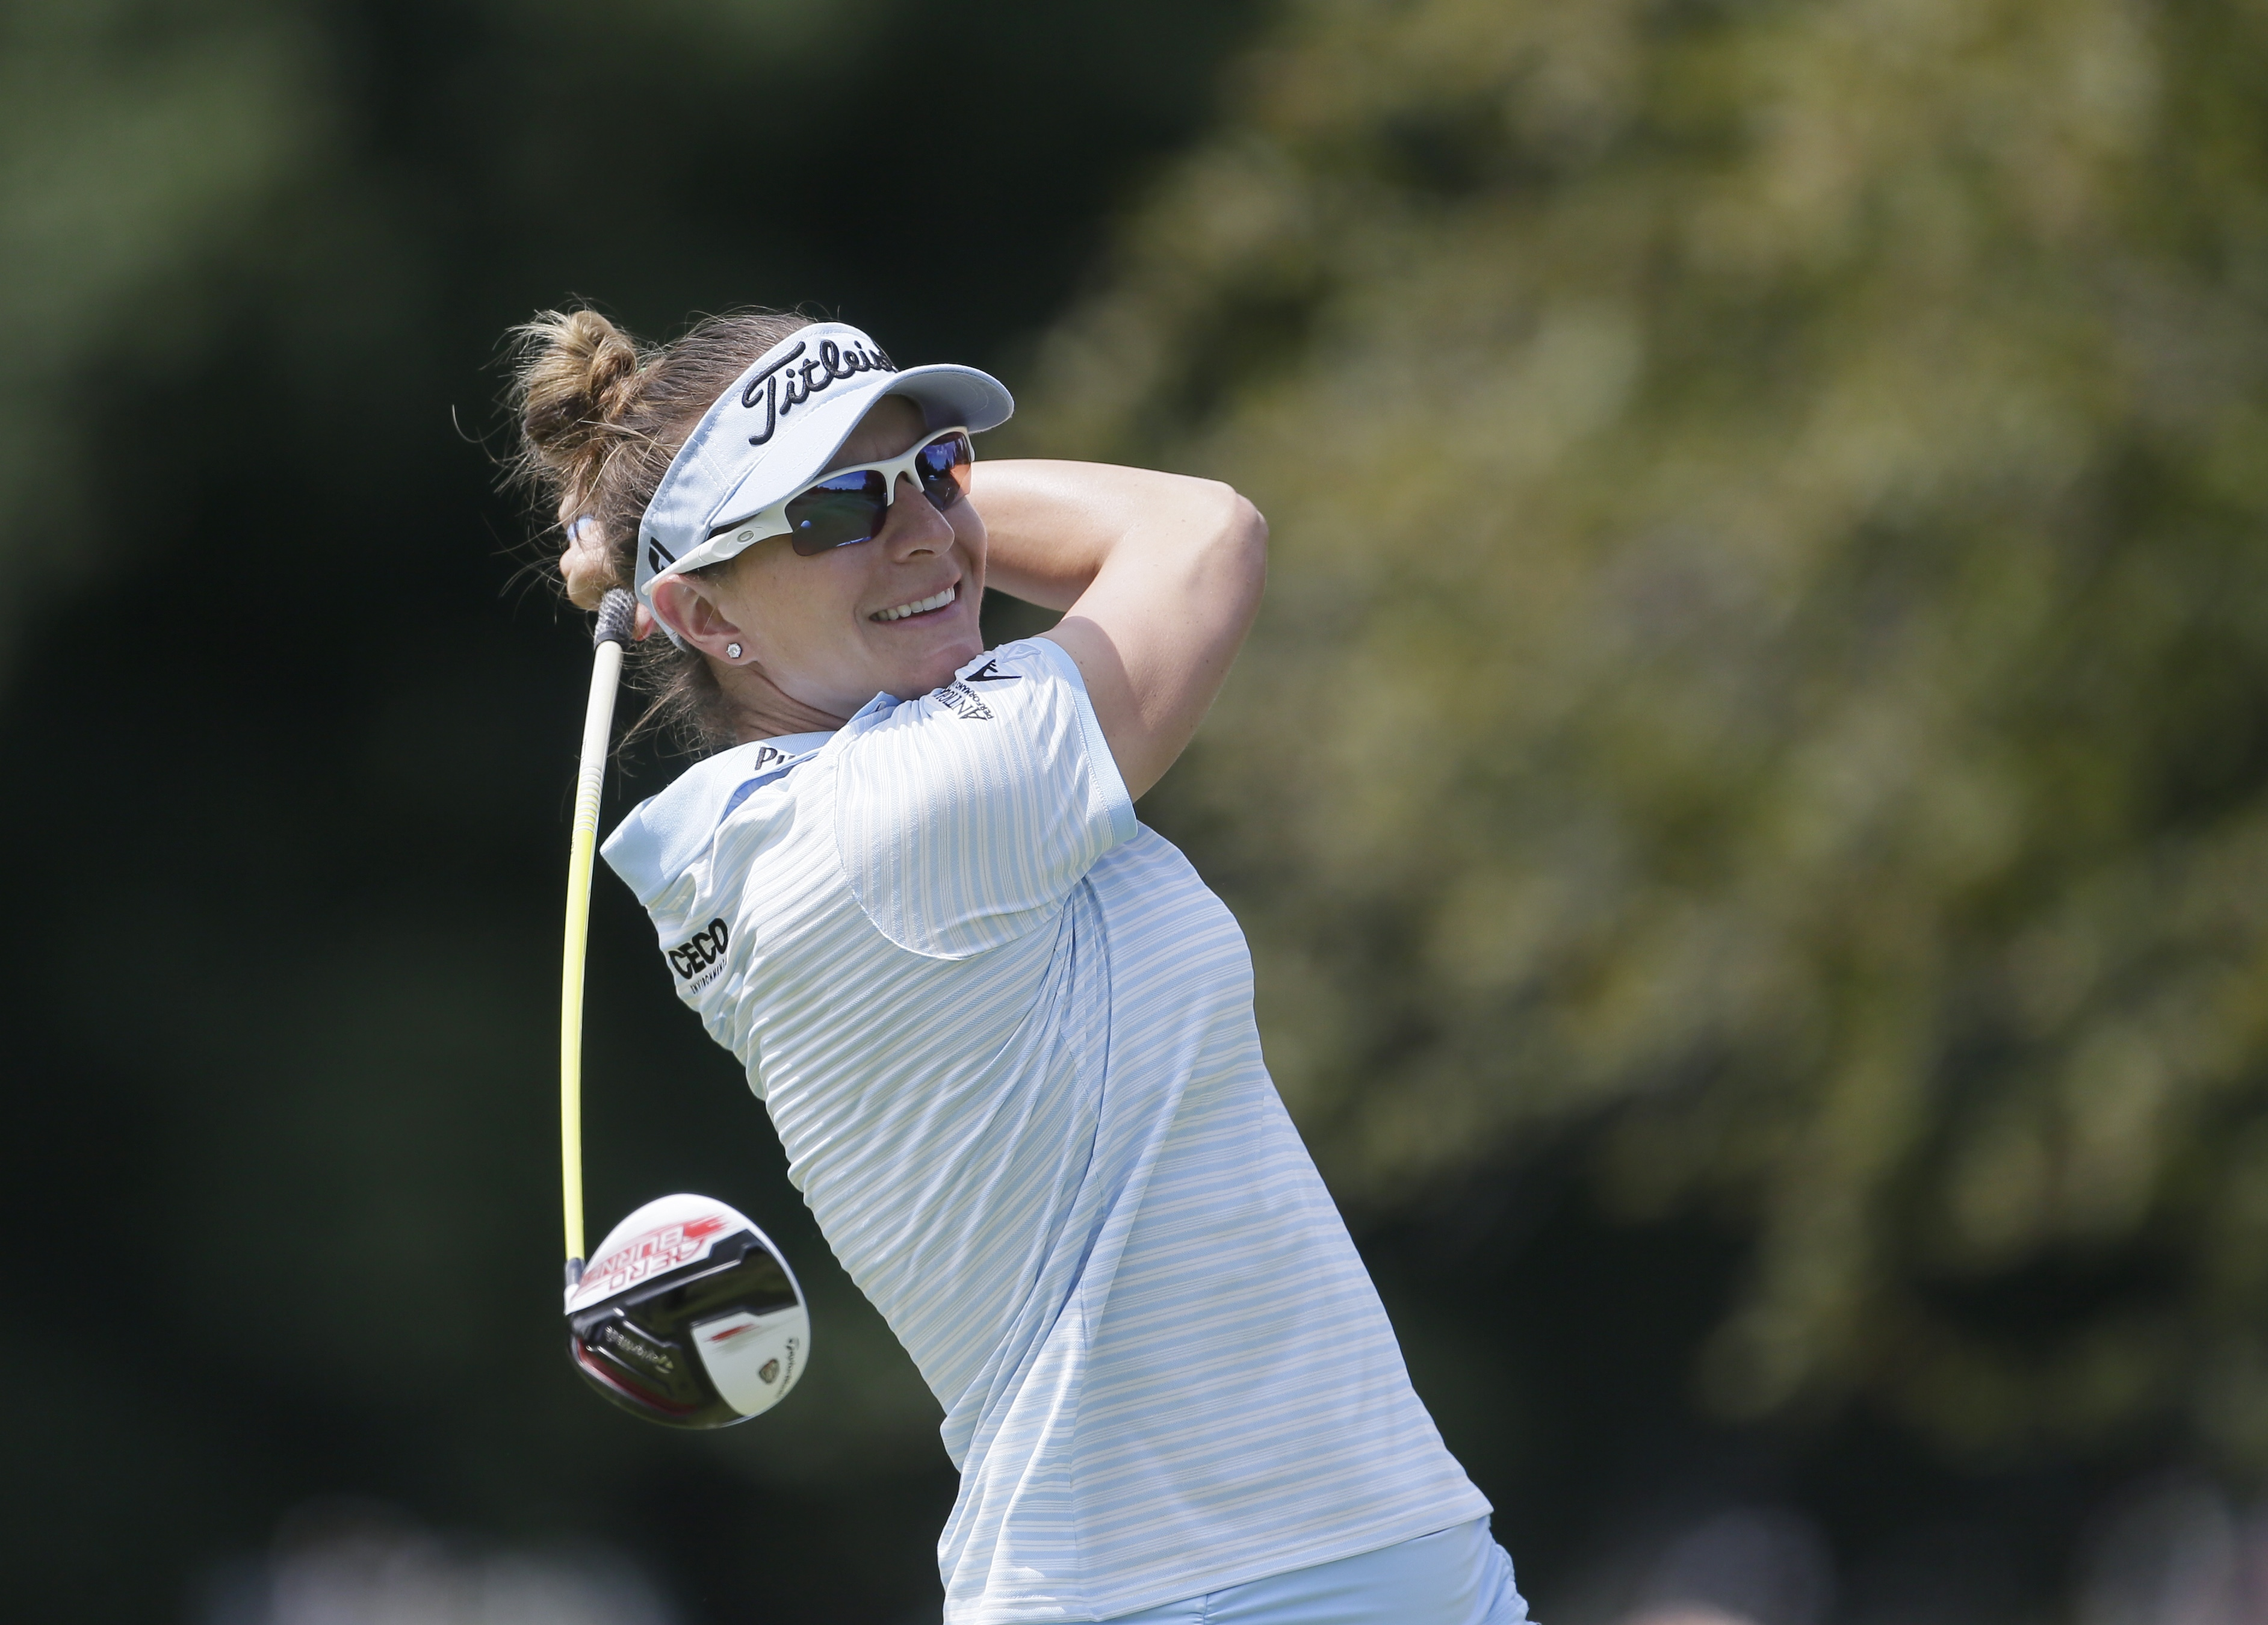 Brittany Lang drives on the 16th hole during the final round of the Meijer LPGA Classic golf tournament at Blythefield Country Club, Sunday, July 26, 2015 in Belmont, Mich. (AP Photo/Carlos Osorio)